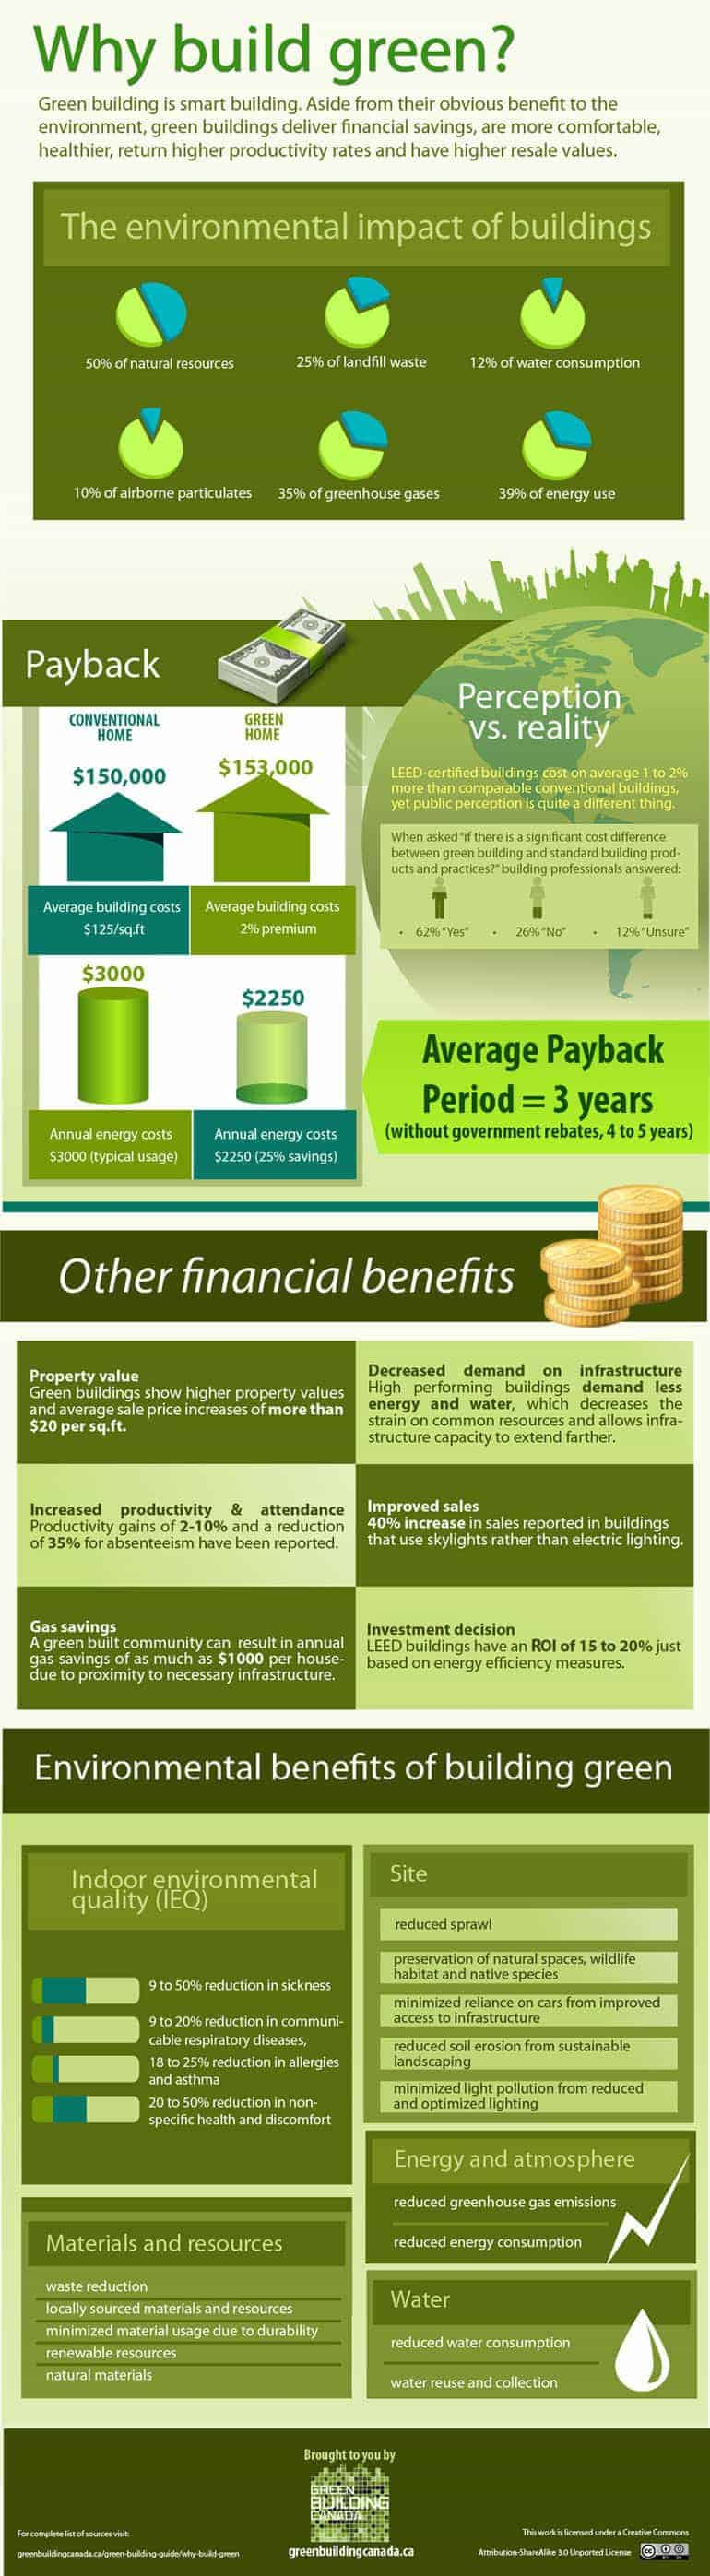 Why build green? [infographic]